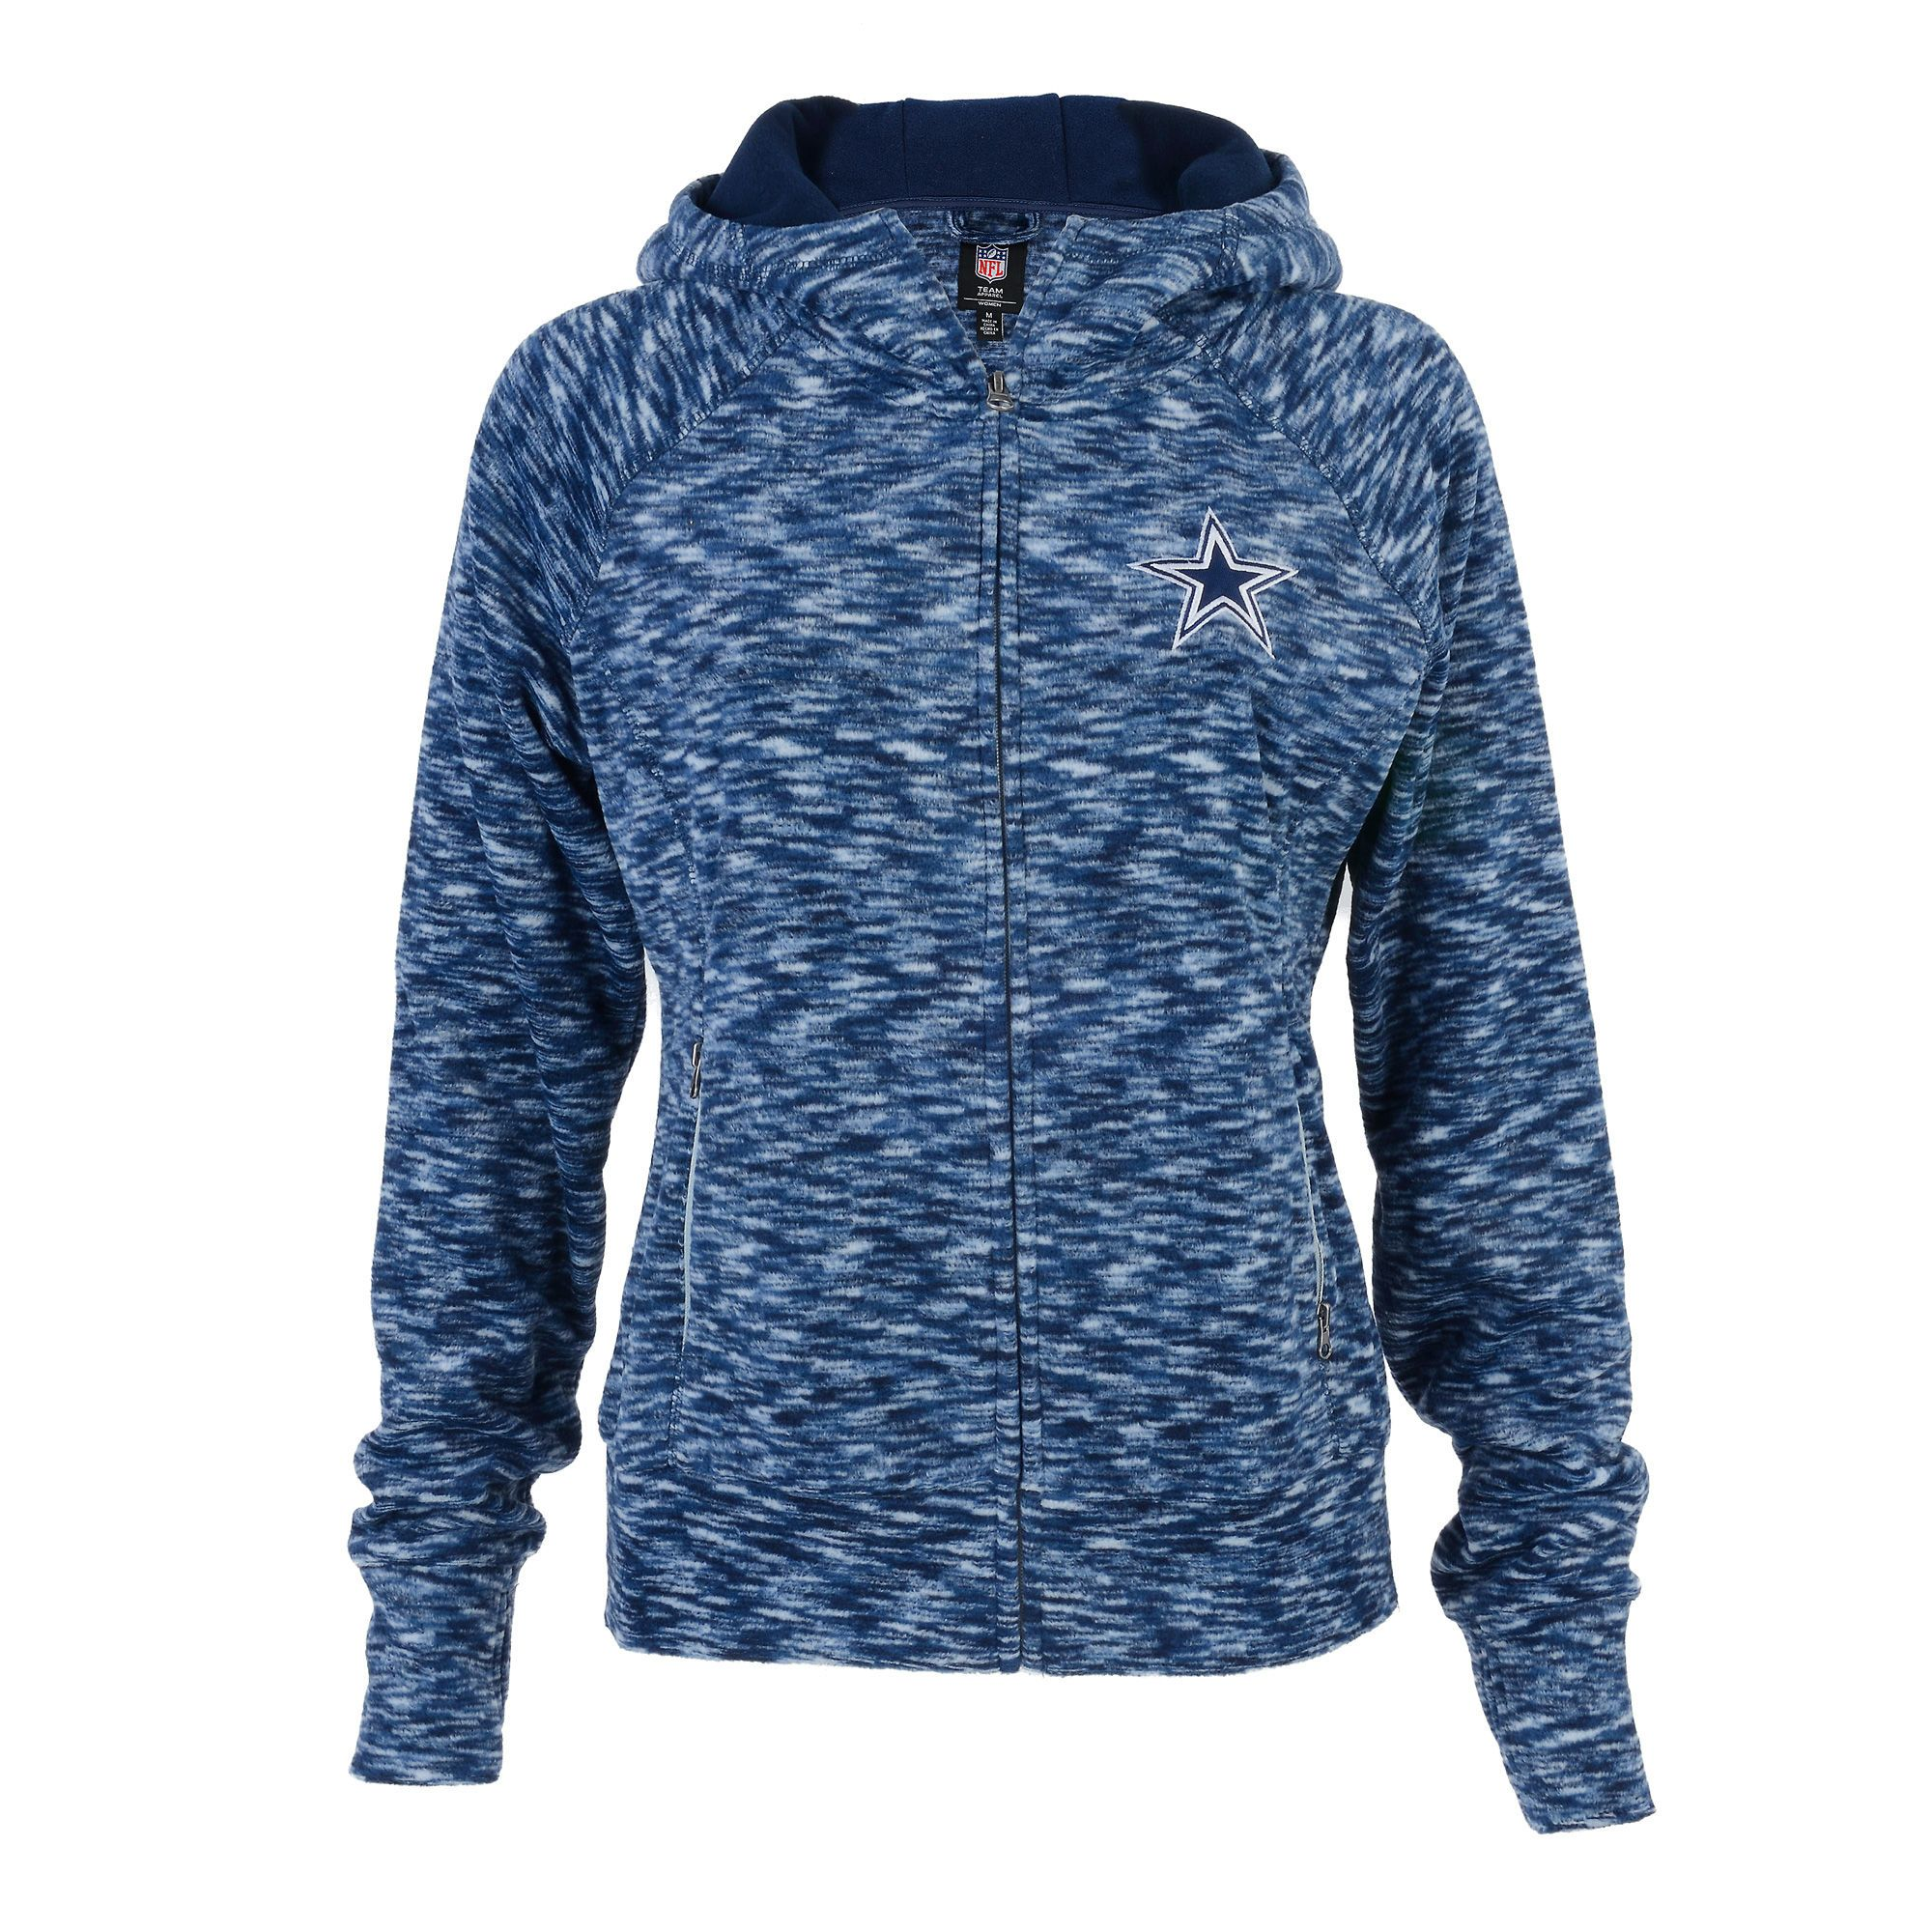 b02d7b4b1 Dallas Cowboys Women s Navy Blue Bluewag Space Dye Fleece Full-Zip Jacket -  2XL